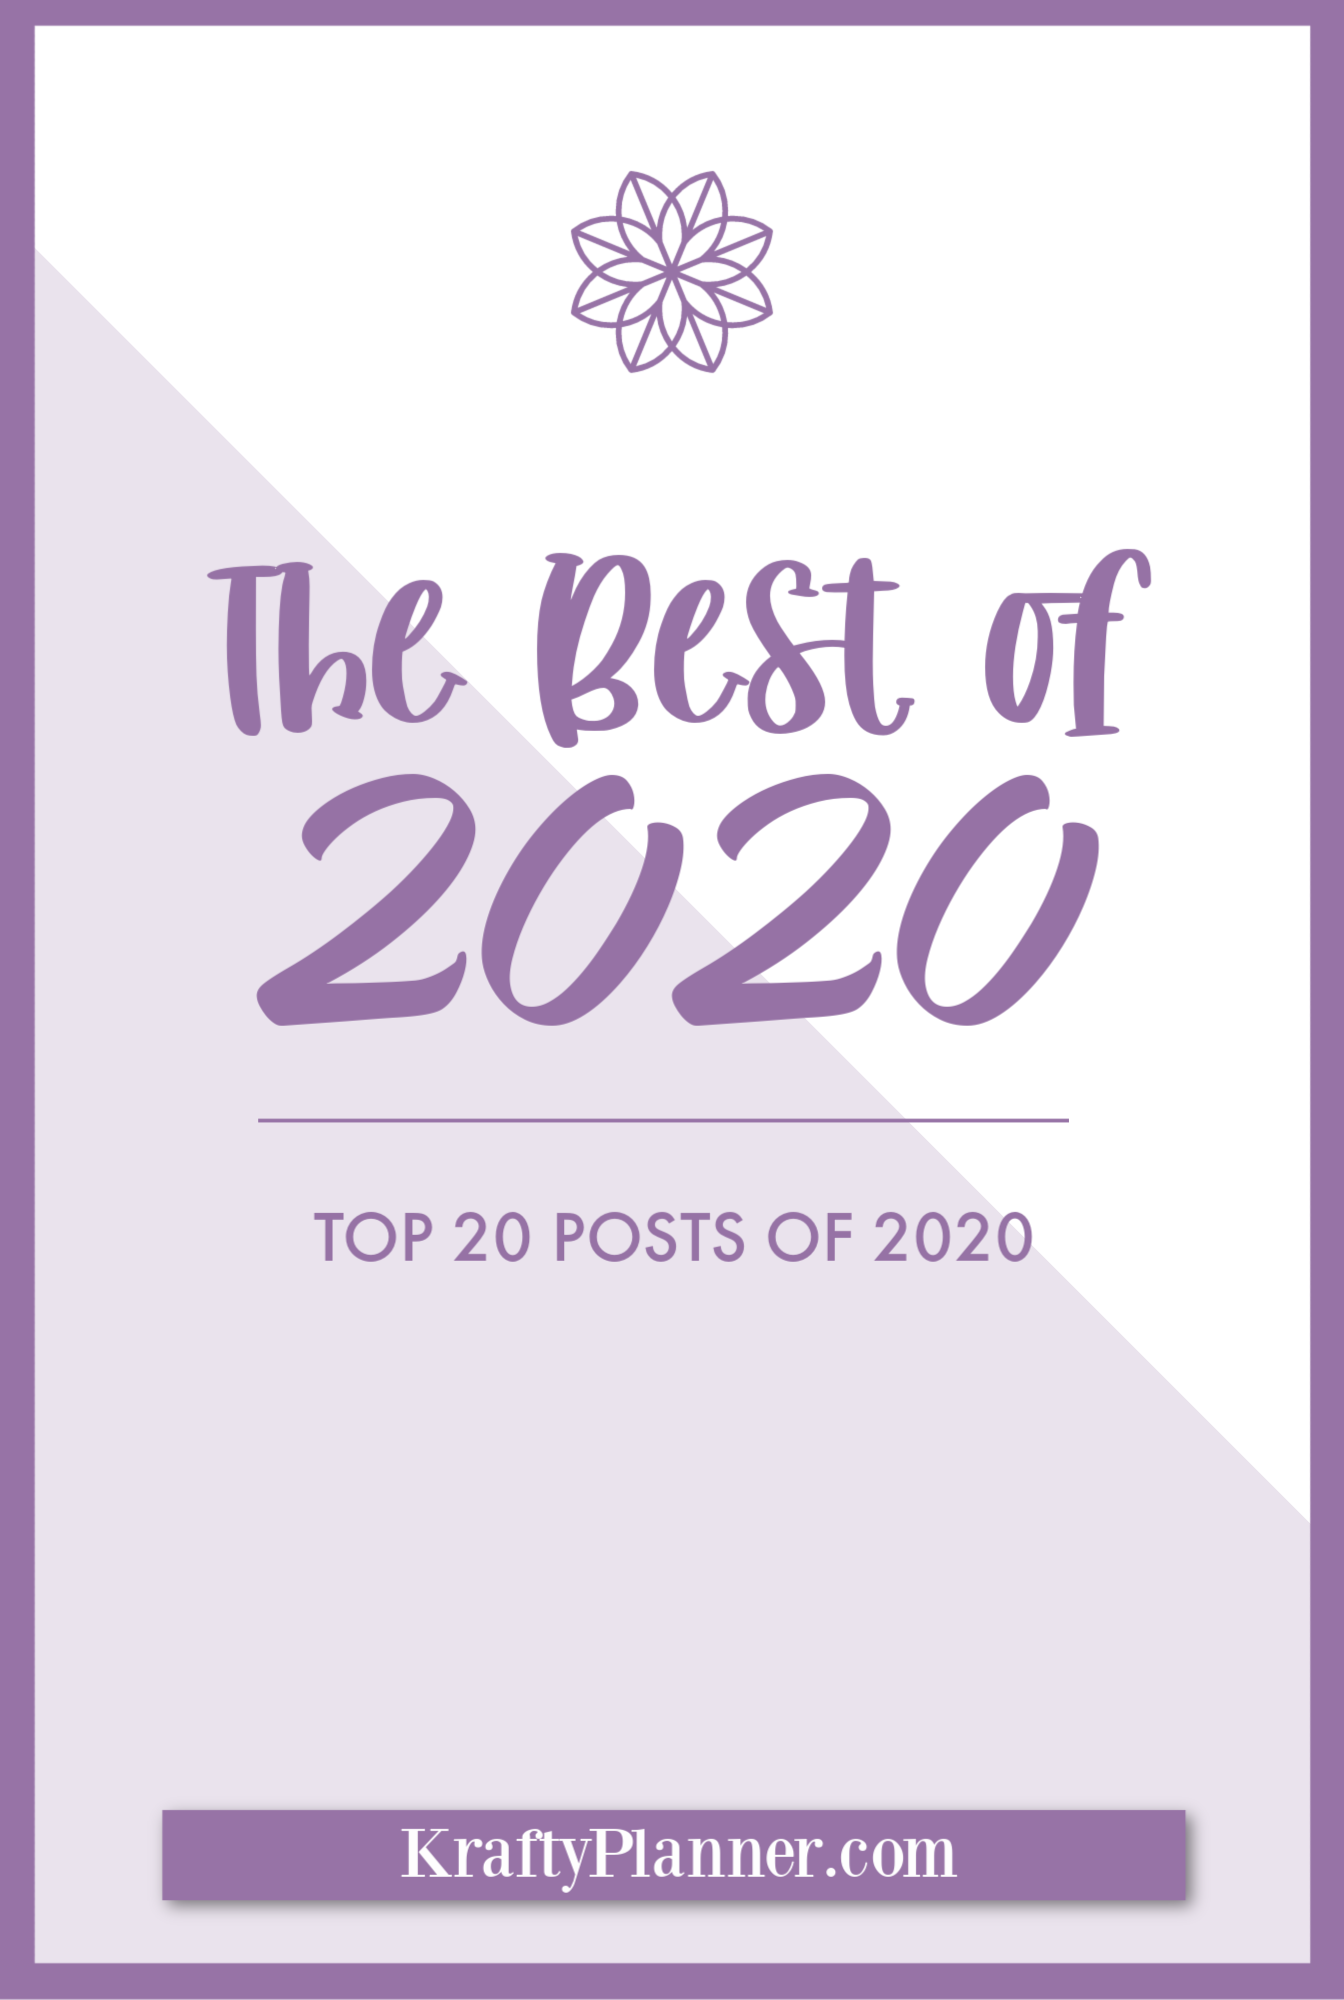 The Best of 2020: Top 20 Posts